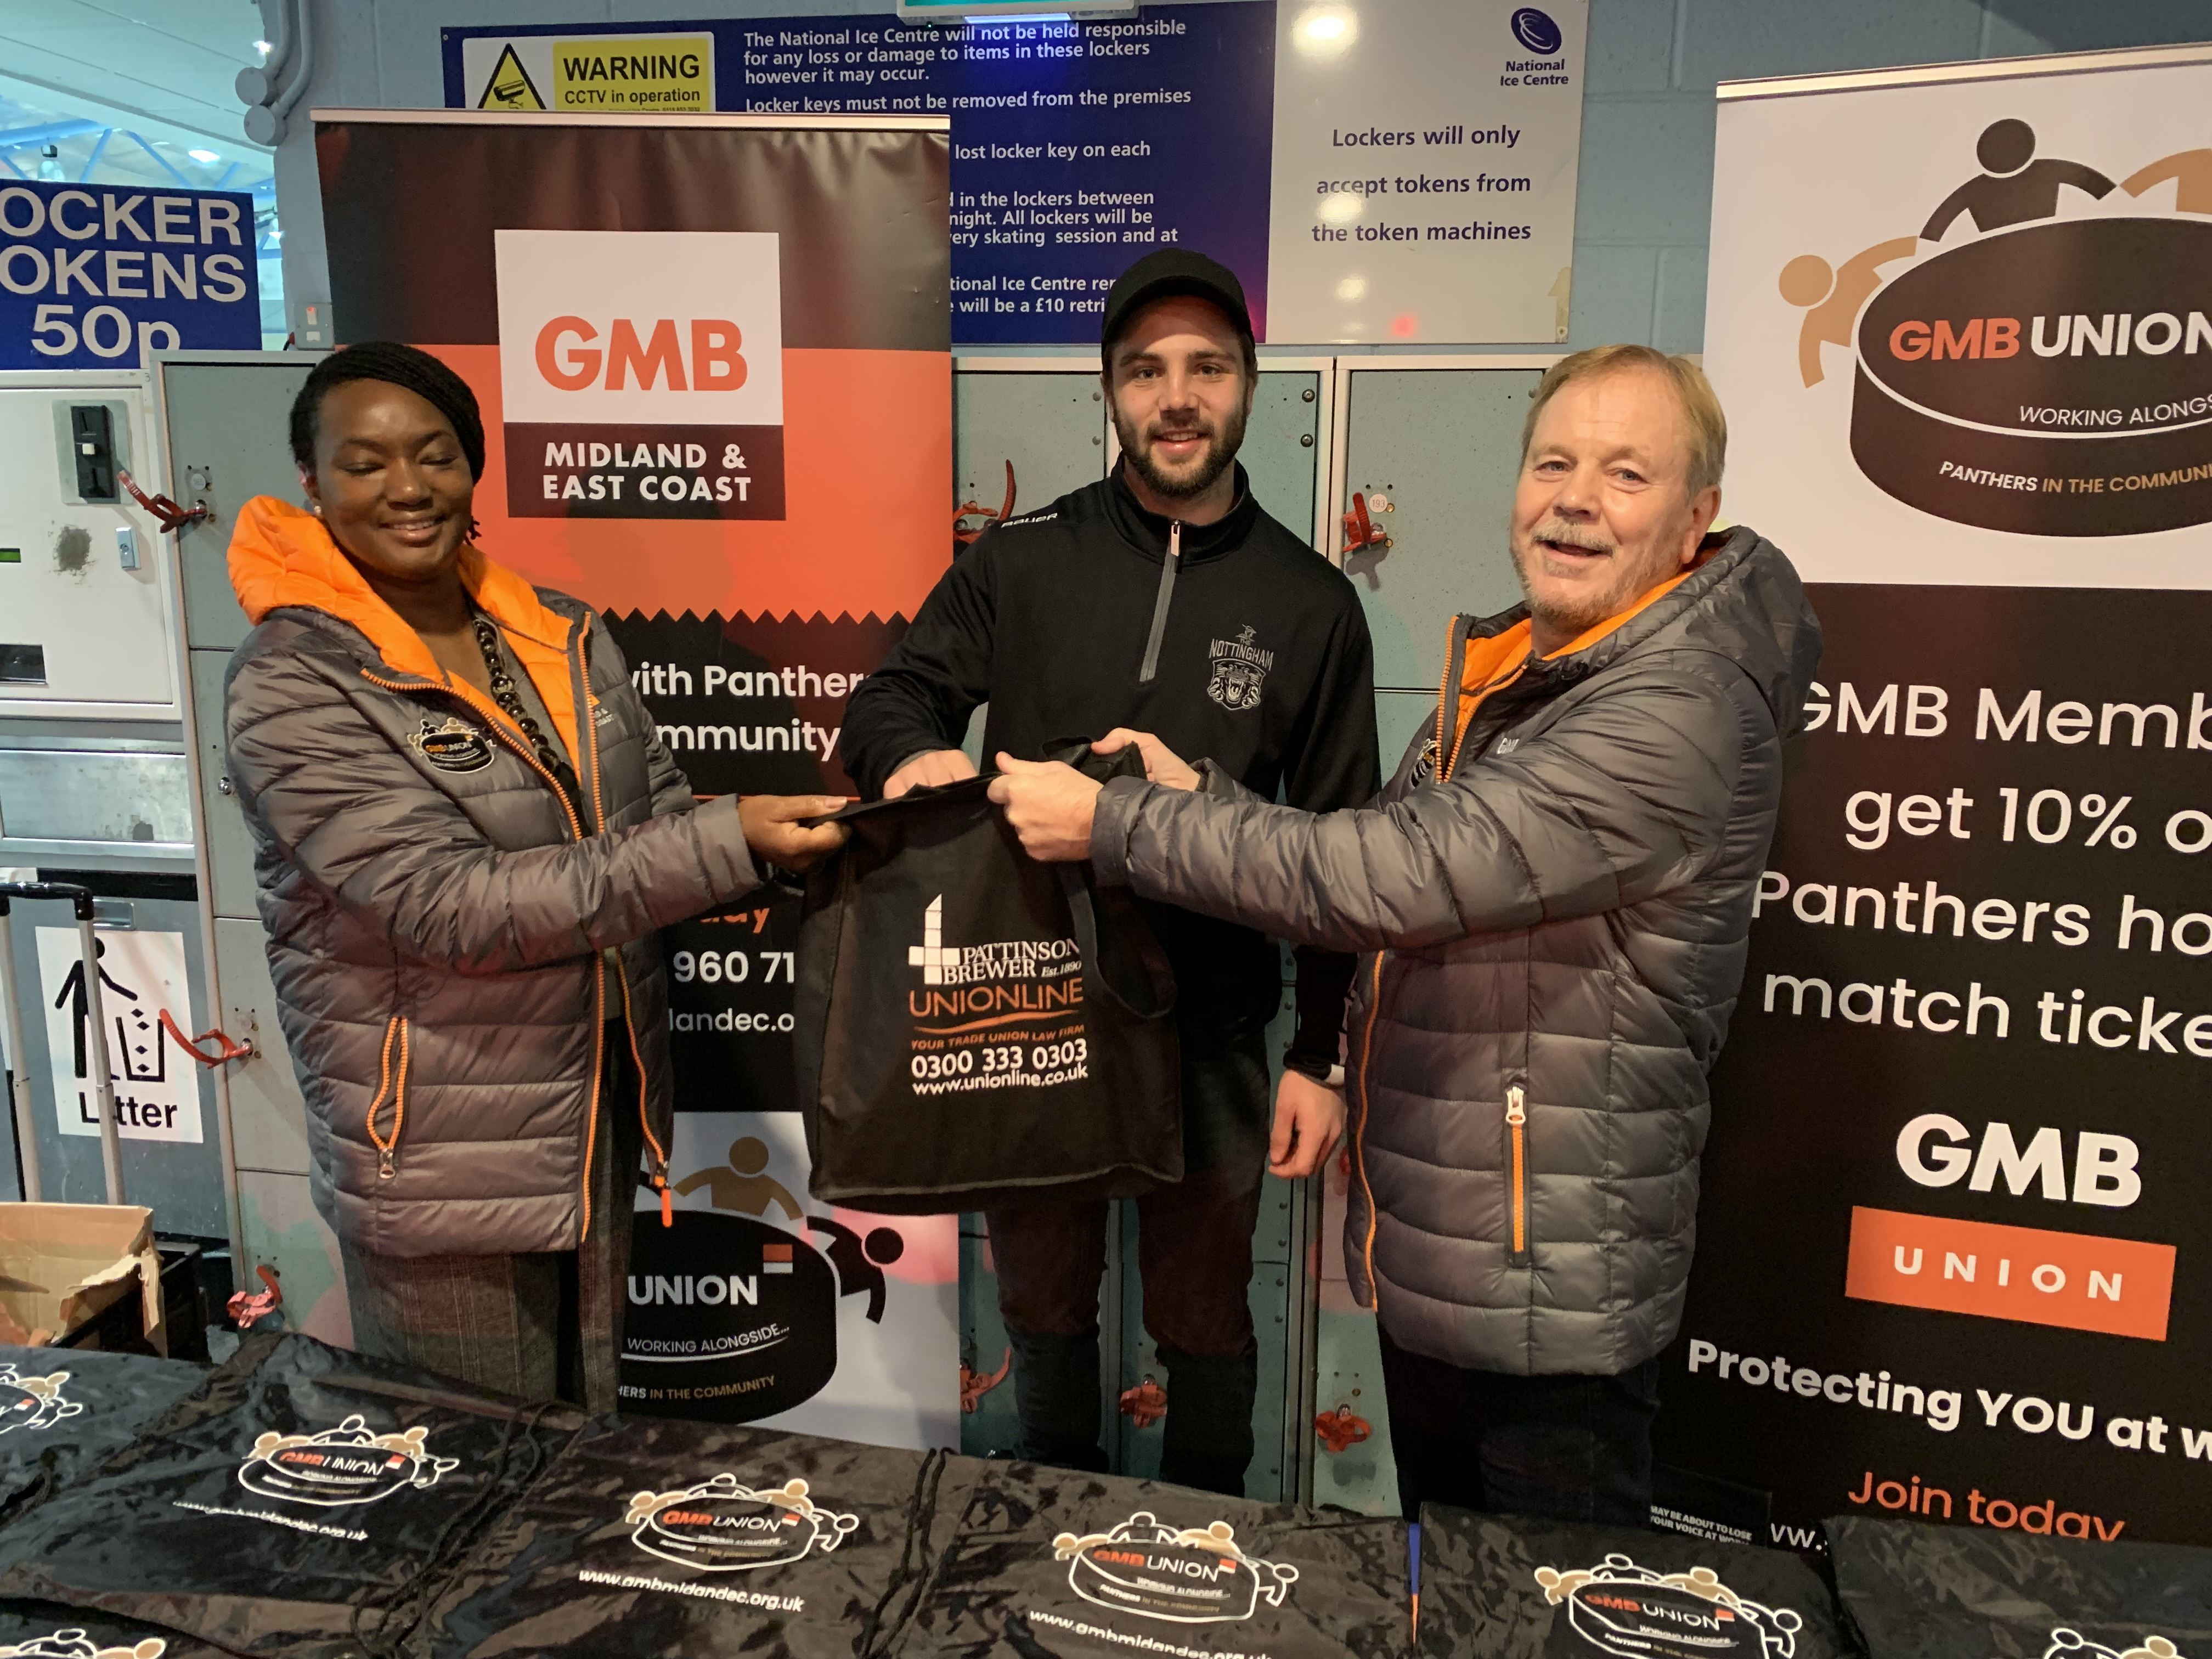 GMB backstage tour winner announced Top Image